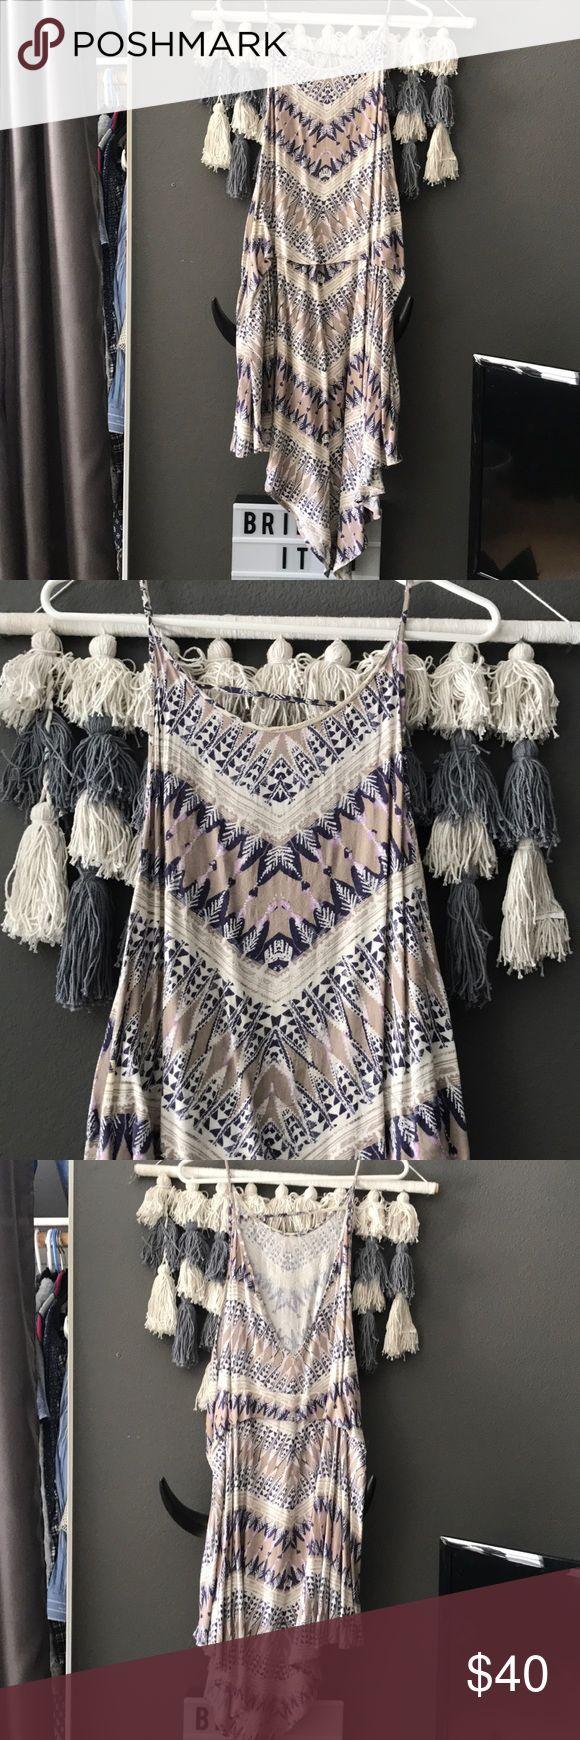 FREE PEOPLE TRIBAL HIGH LOW DRESS Summer is just around the corner, and boy is this dress the PERFECT summer (or spring) outfit 💃🏼 this is in great condition, it is a high low dress meaning it is short in the front and long in the back. Only worn a few times! Free People Dresses High Low